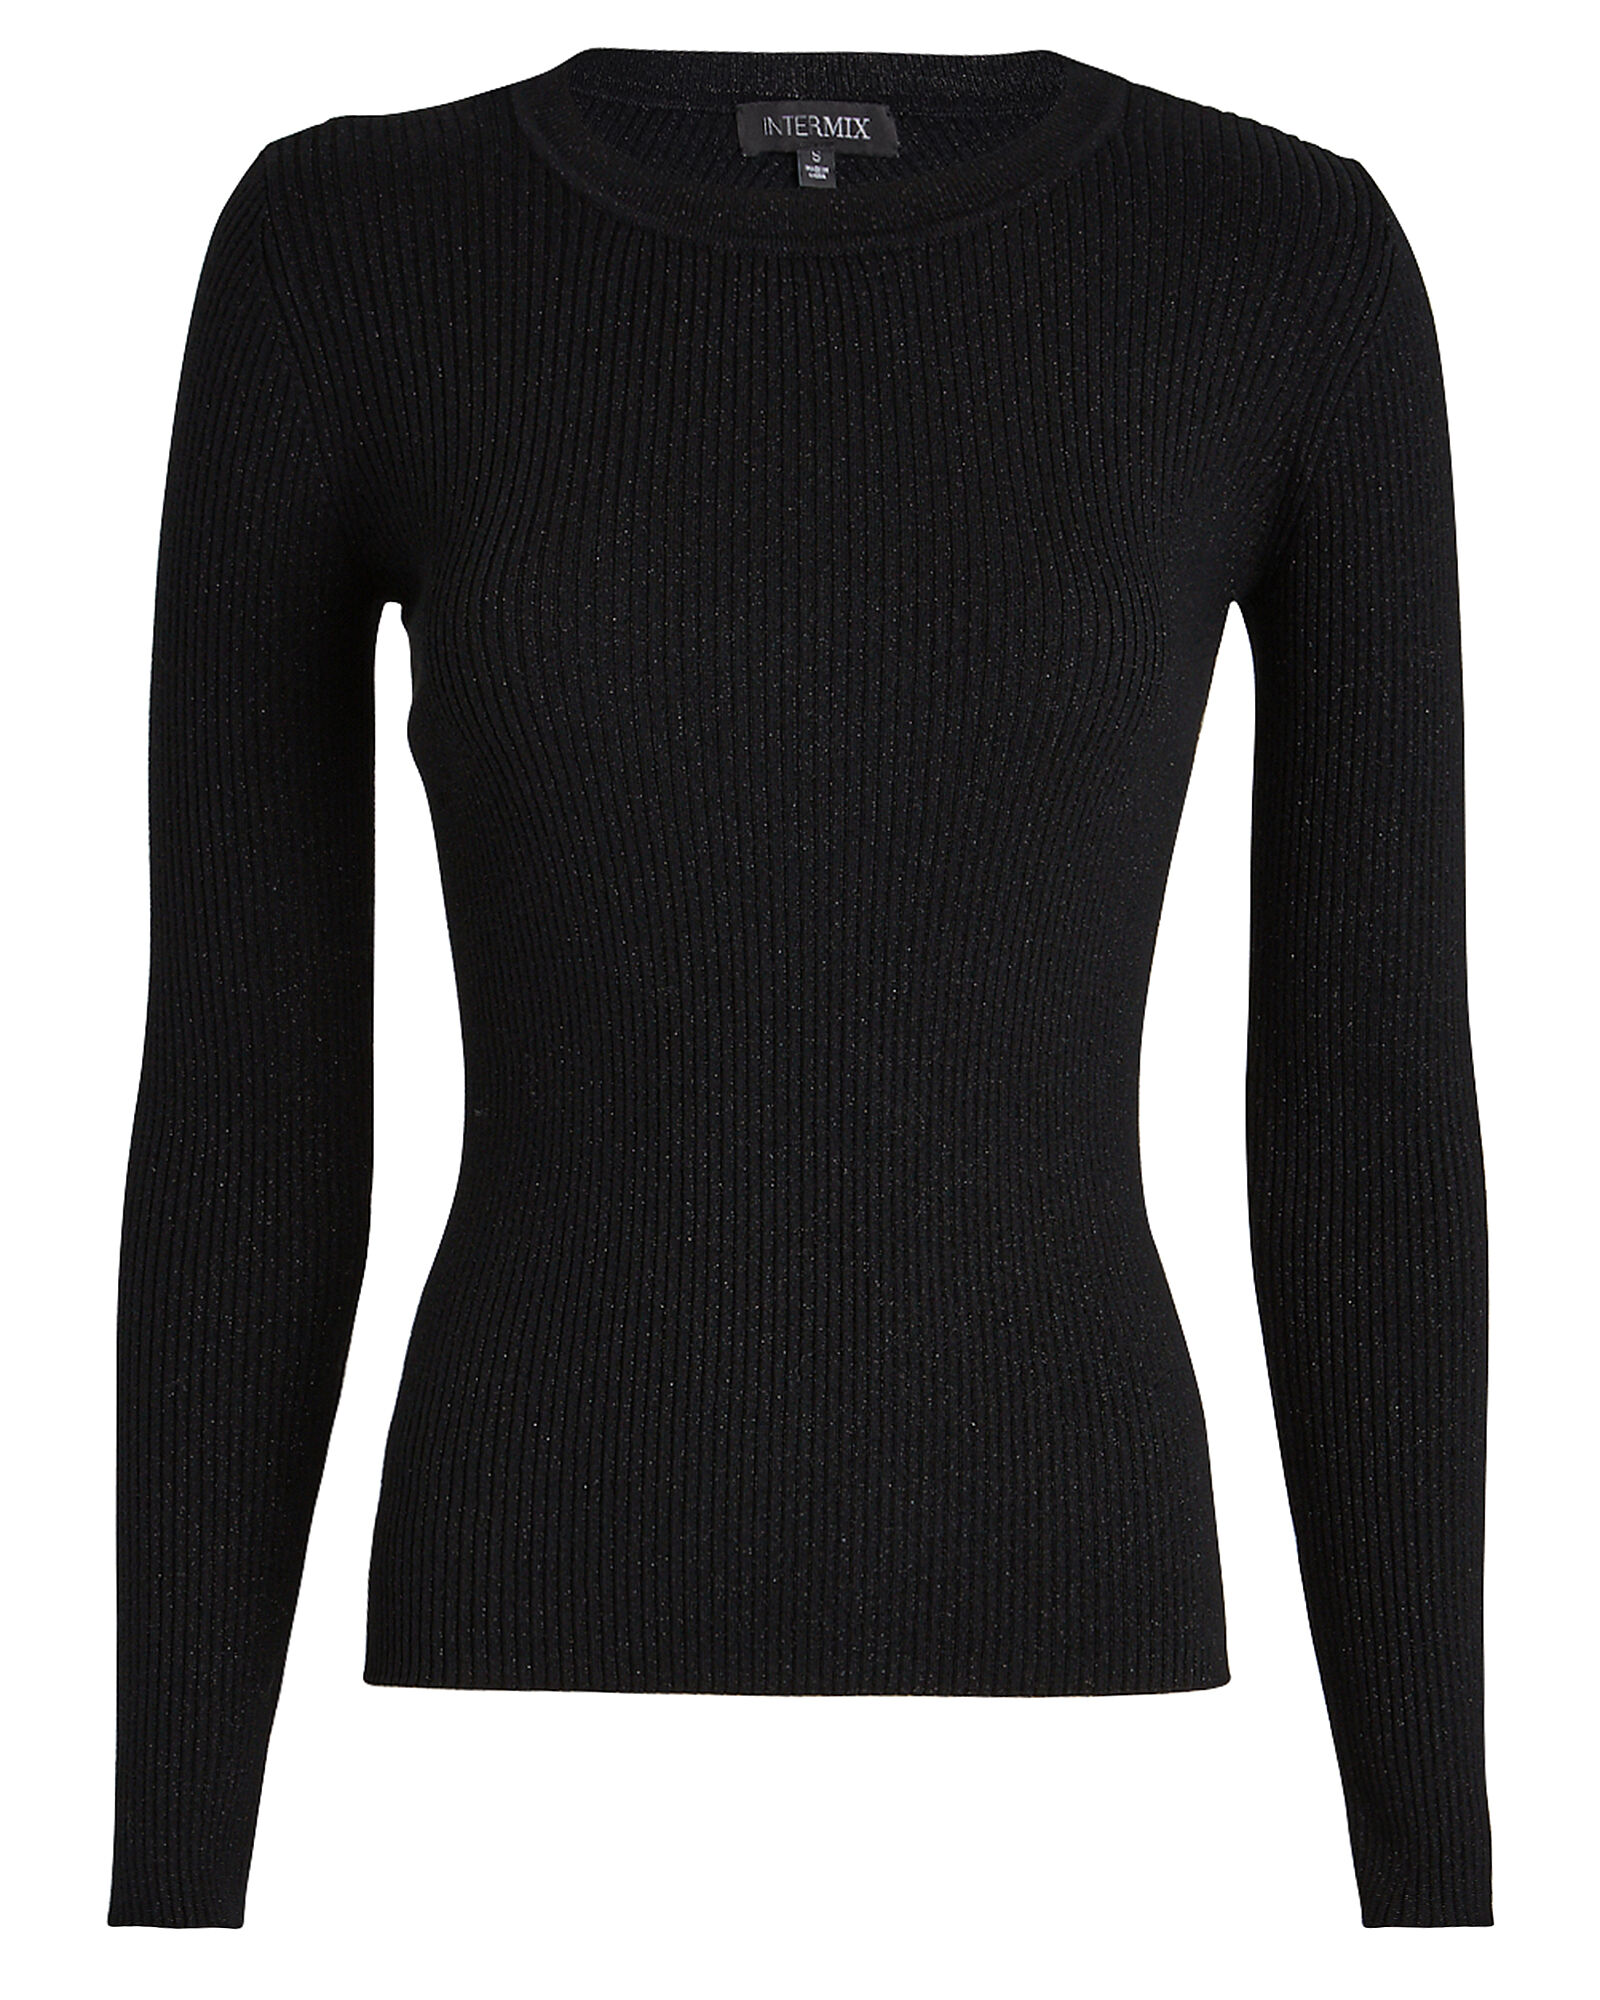 Avril Lurex Rib Knit Top, BLACK, hi-res